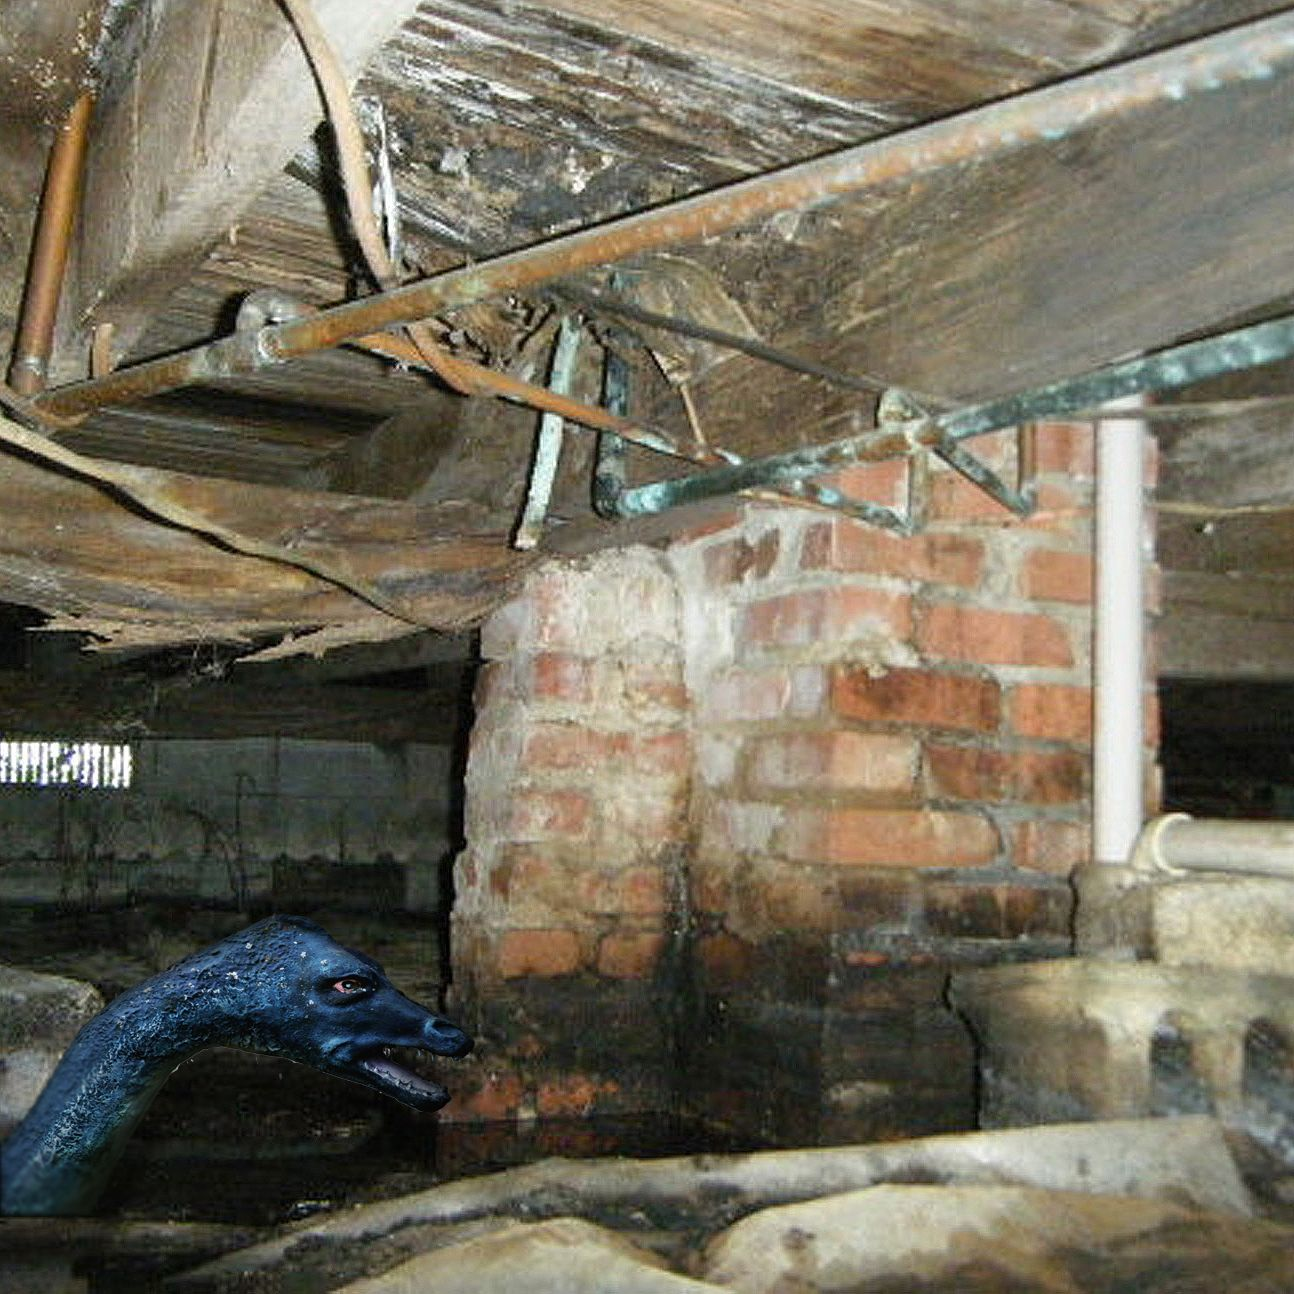 Guess it's time to dry out that crawl space! http//blog